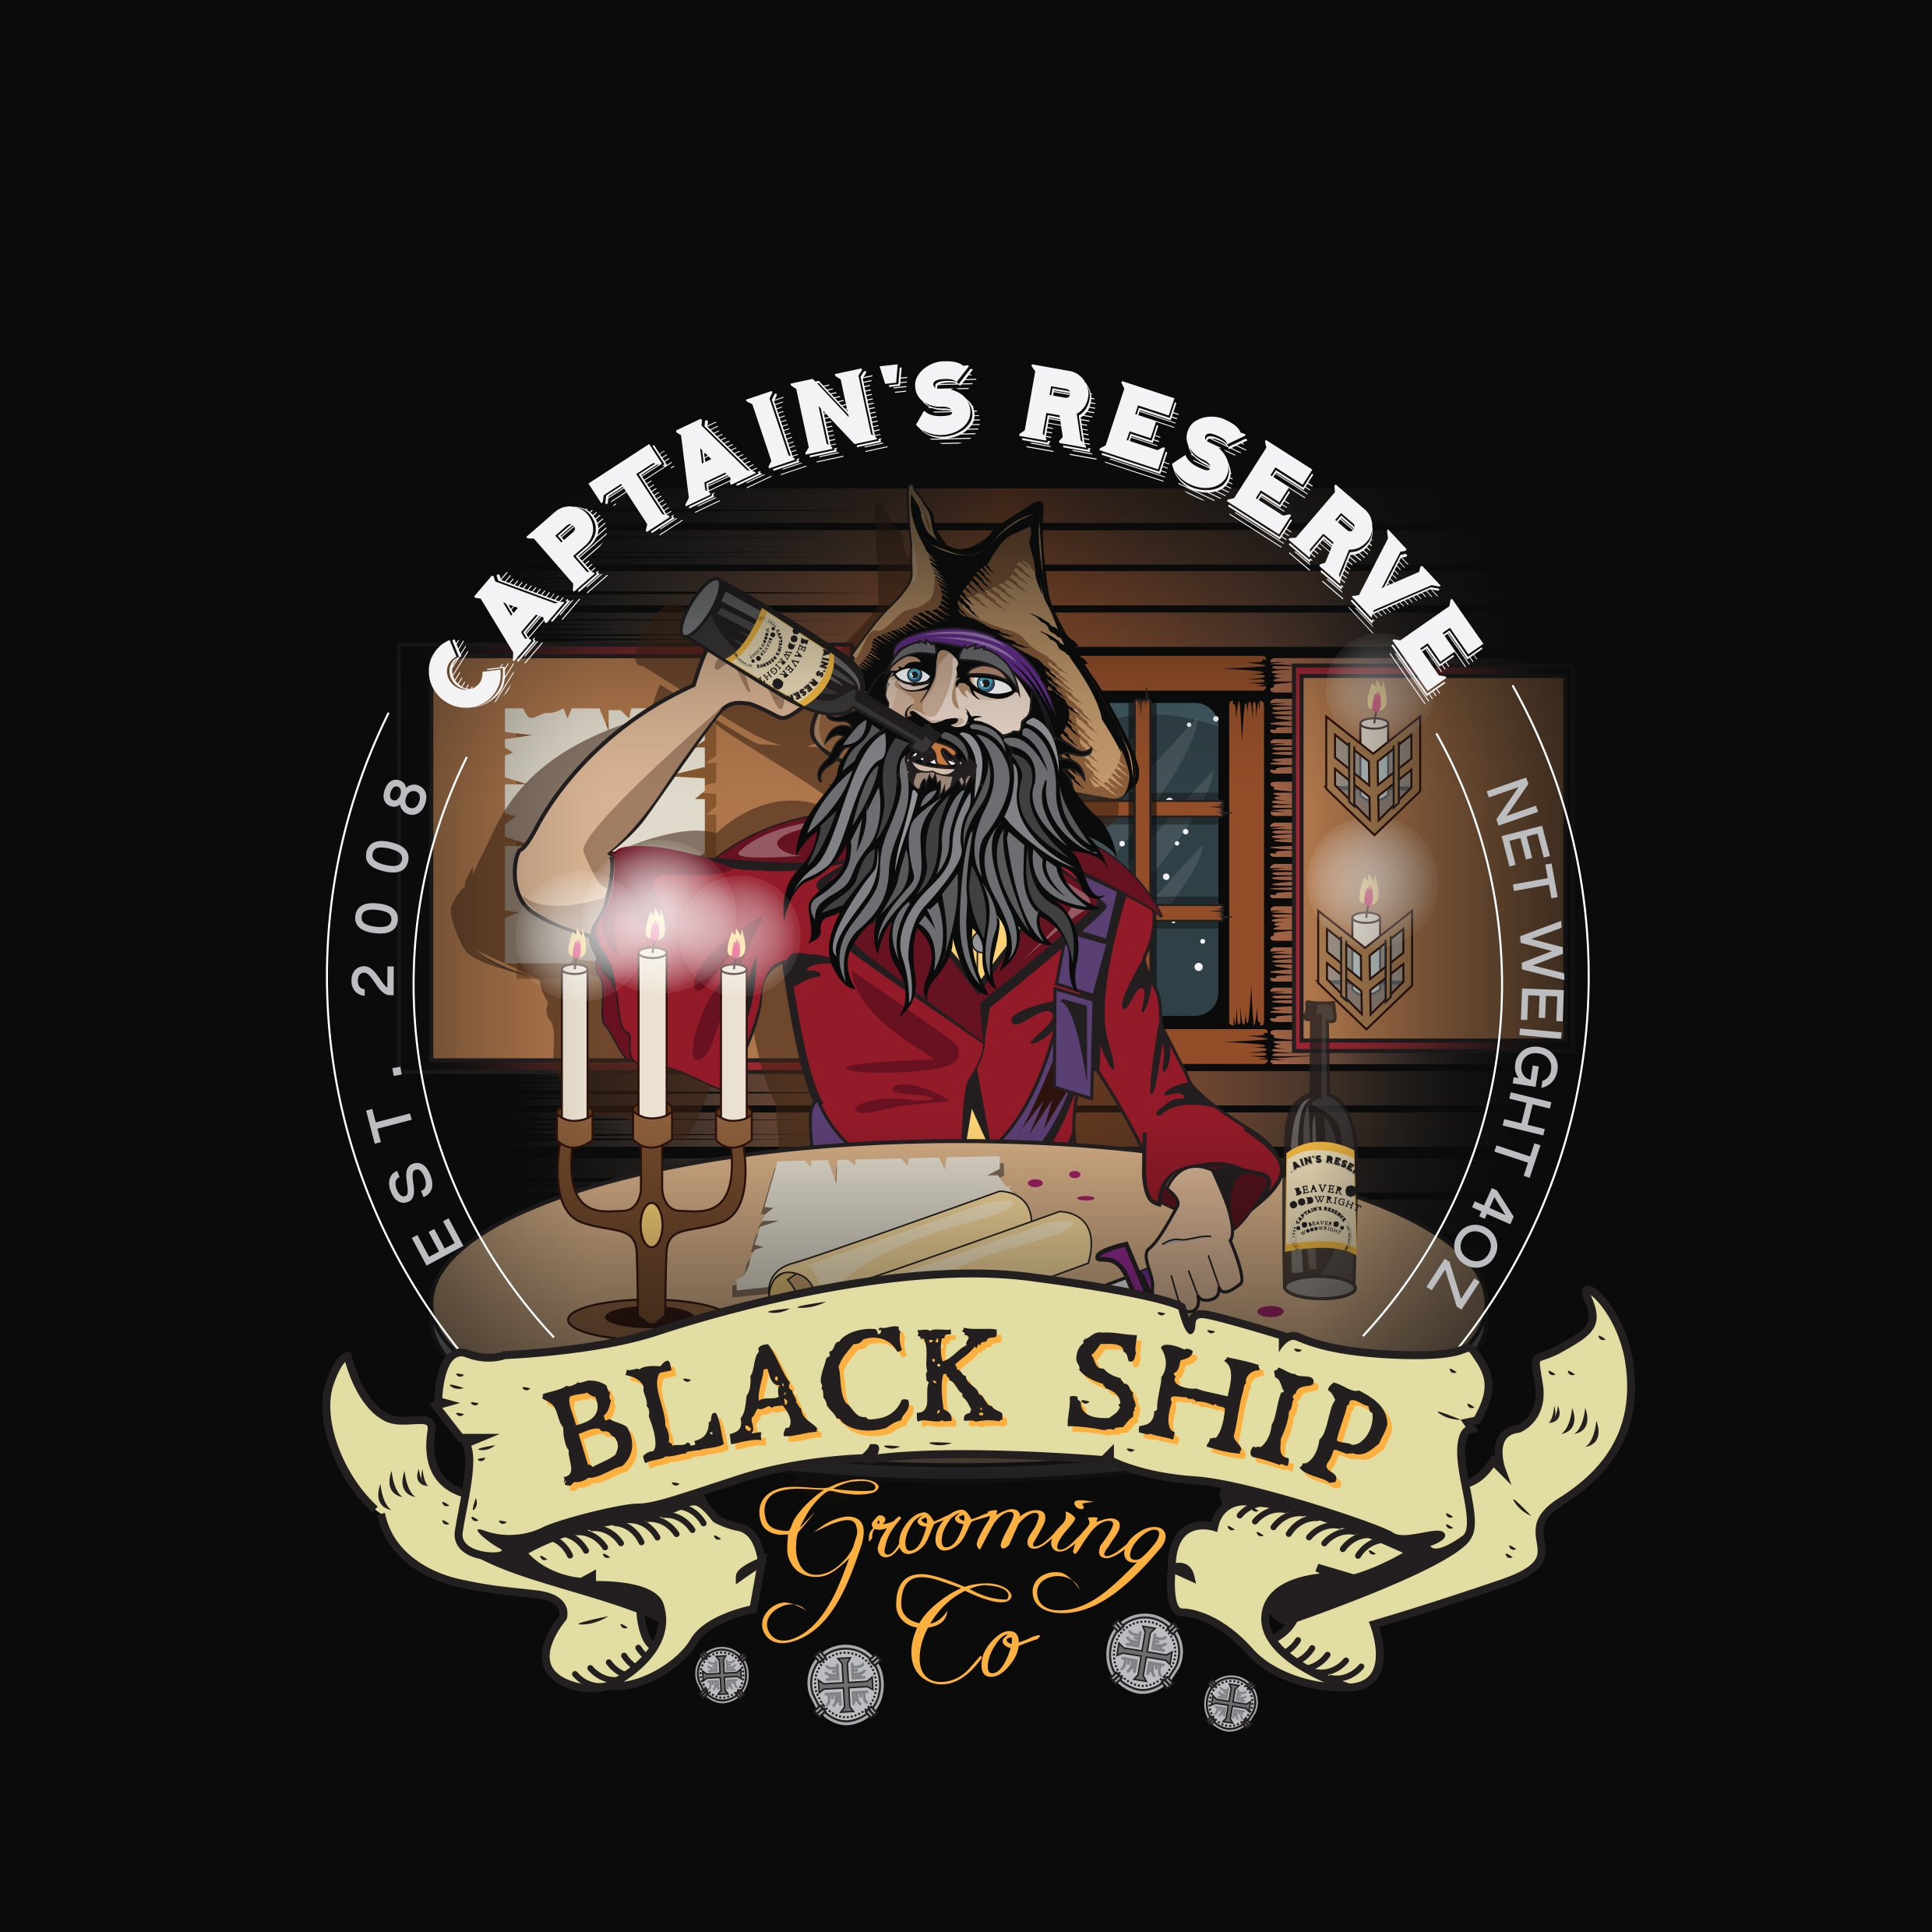 Black Ship Grooming - Captain's Reserve - Soap (Vegan) image